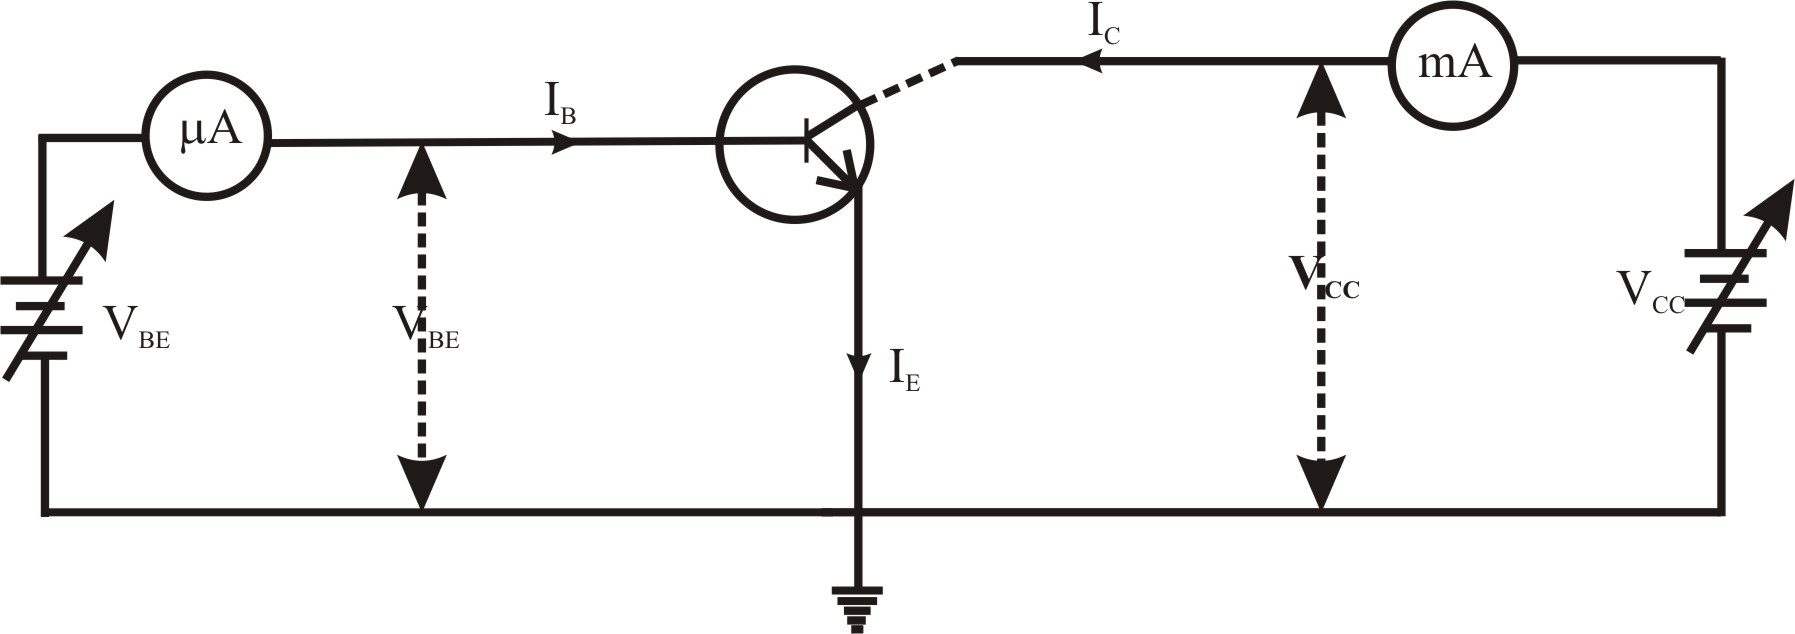 circuit diagram of transistor in common emitter